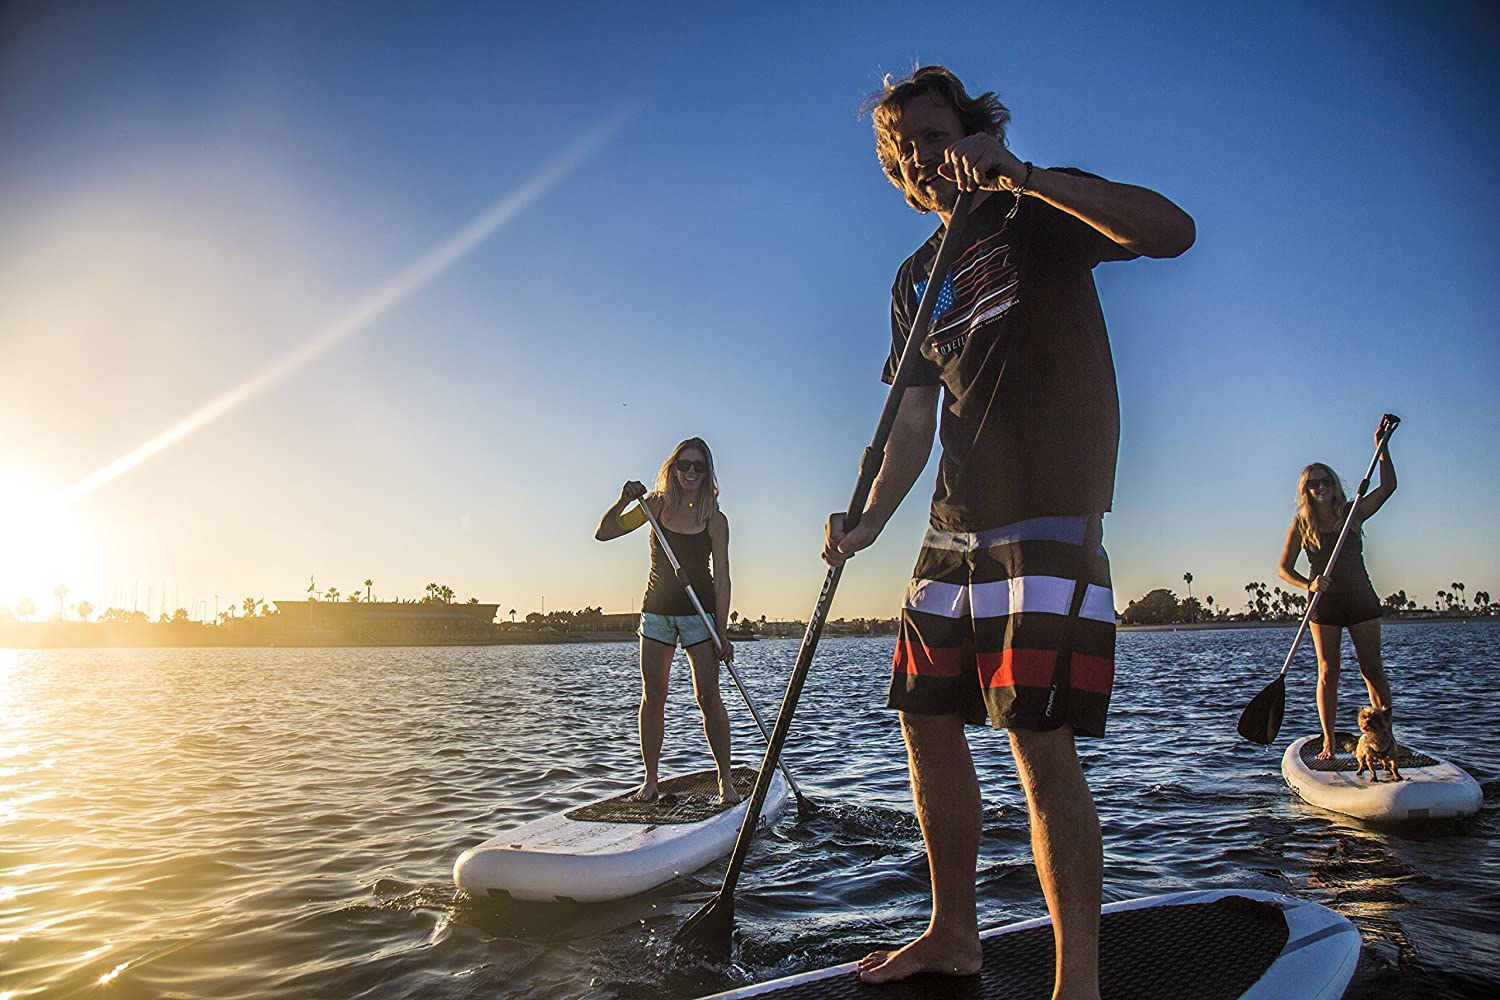 """f82c525d94 Tower Inflatable 10'4"""" Stand Up Paddle Board - (6 Inches Thick) - Universal  SUP Wide Stance - Premium SUP Bundle (Pump & Adjustable Paddle Included) ..."""